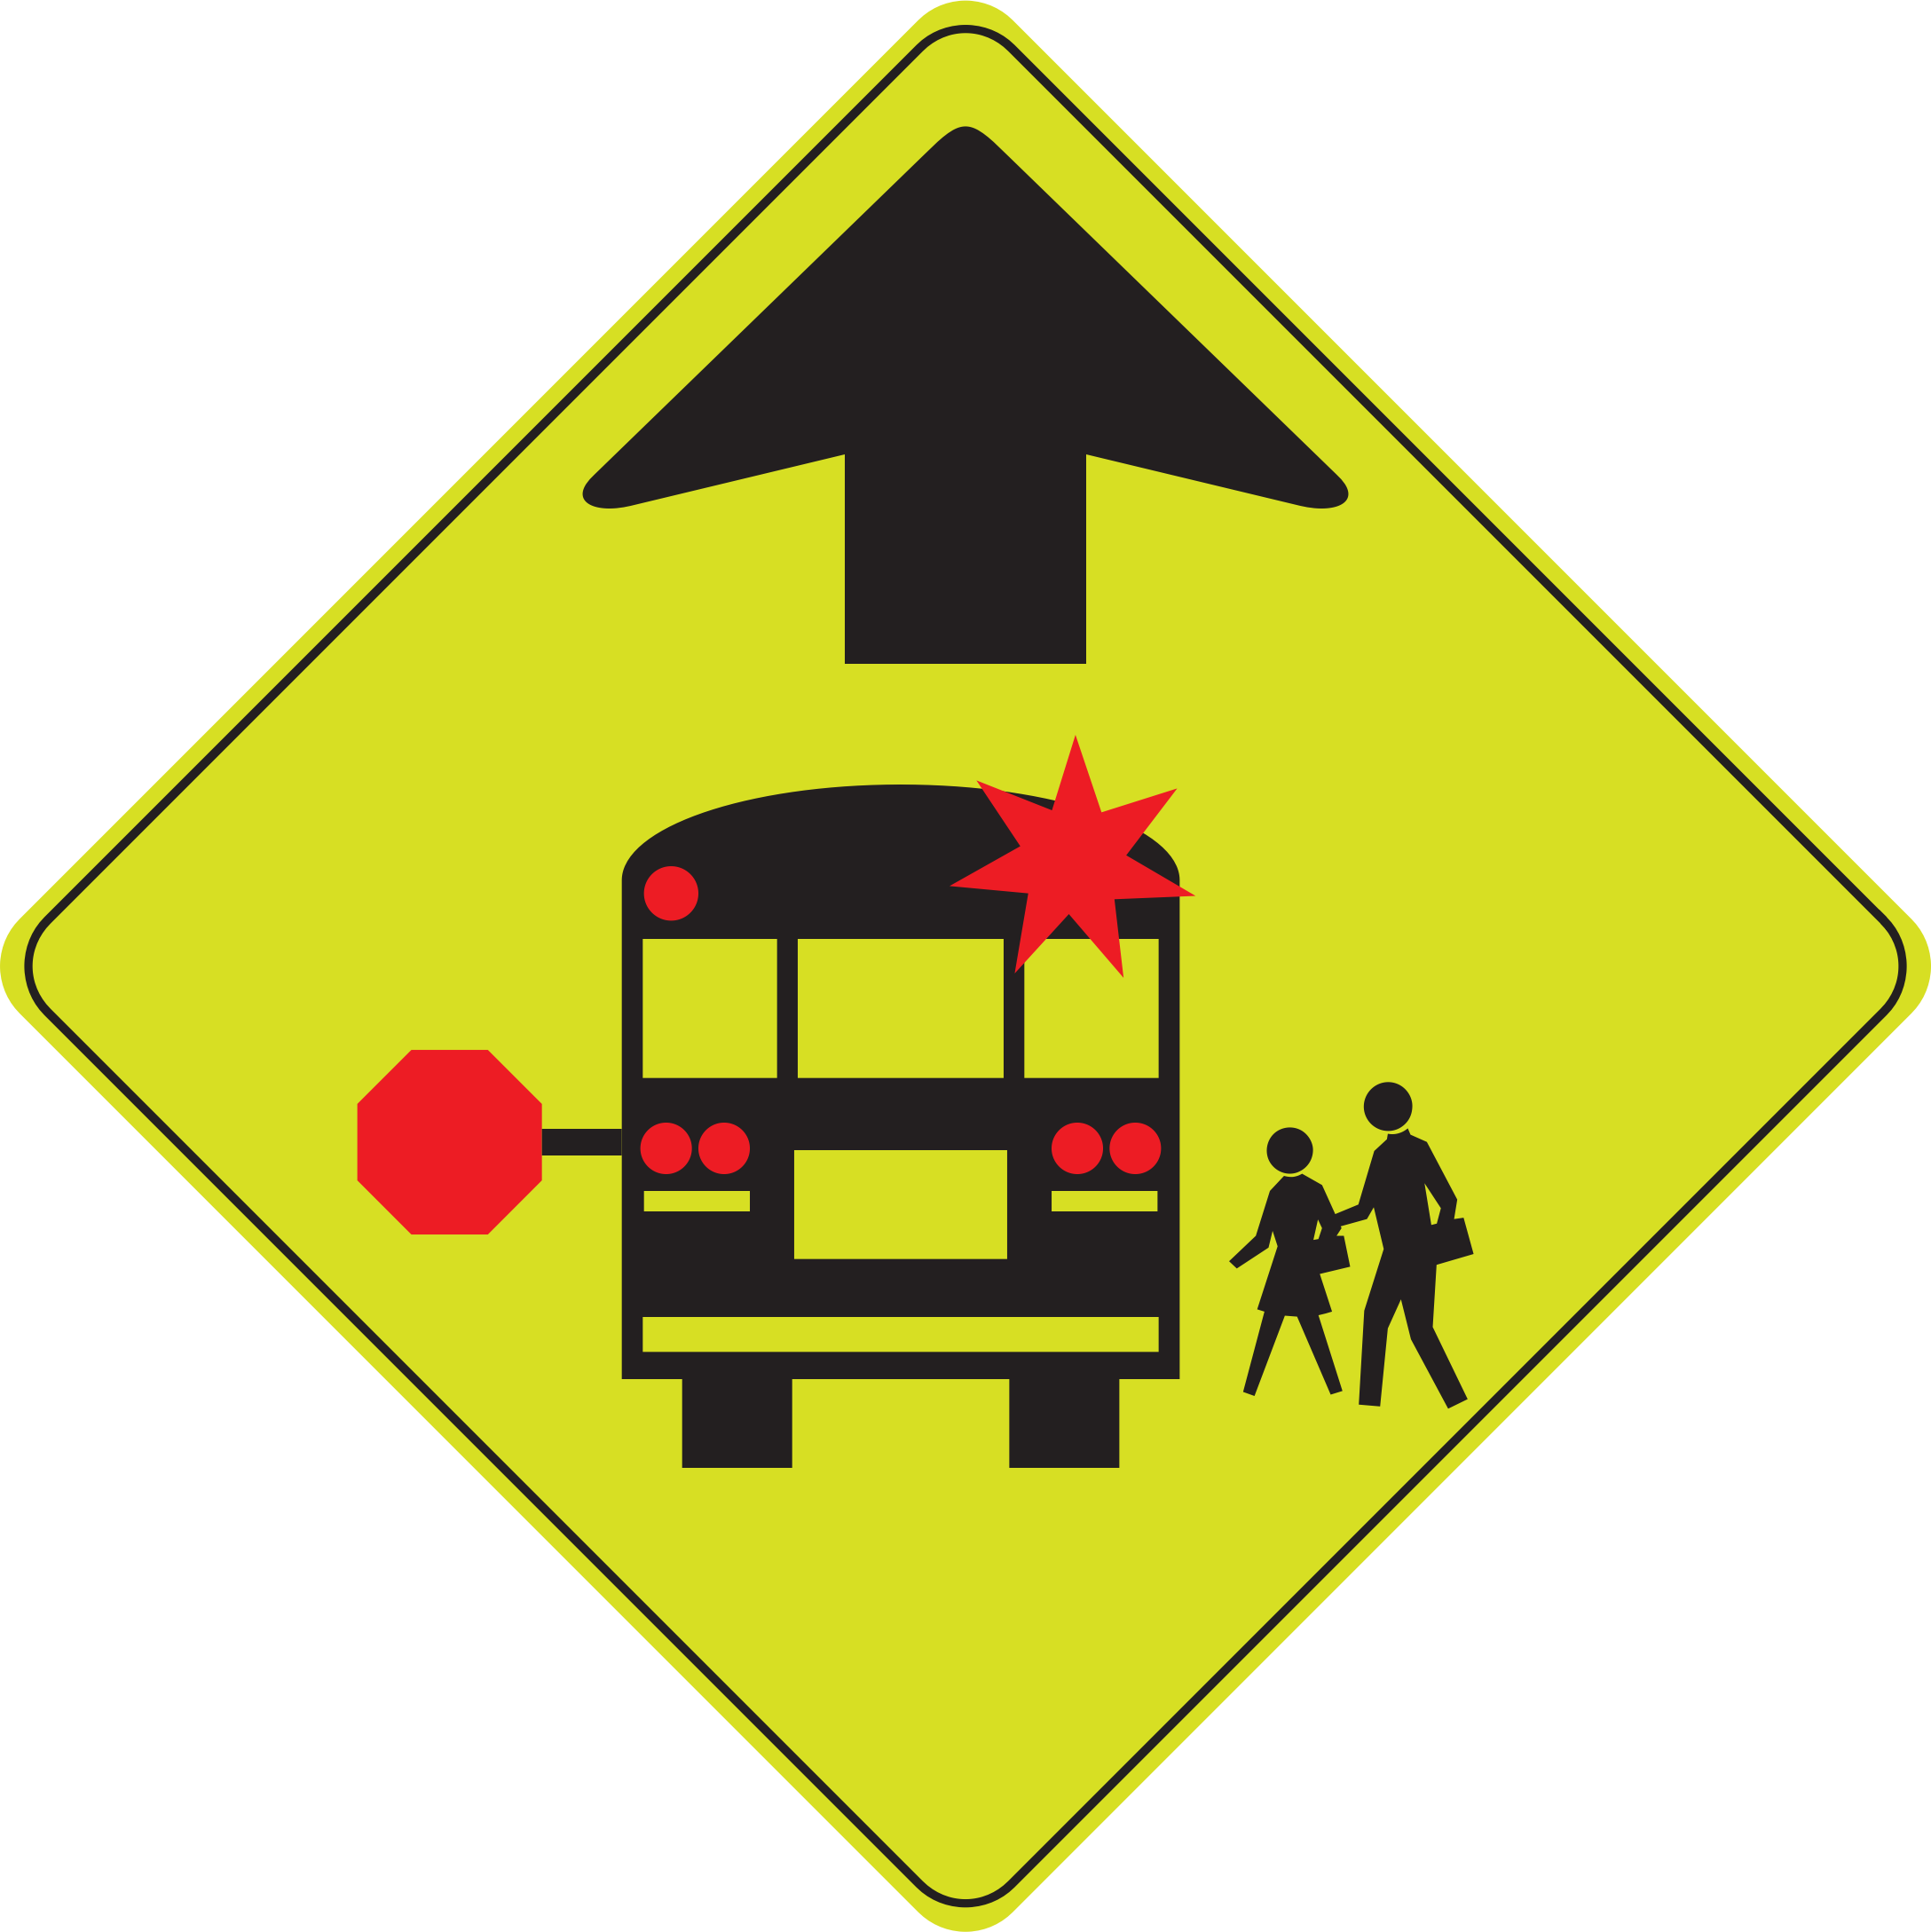 Change vector ahead. School bus stop icons